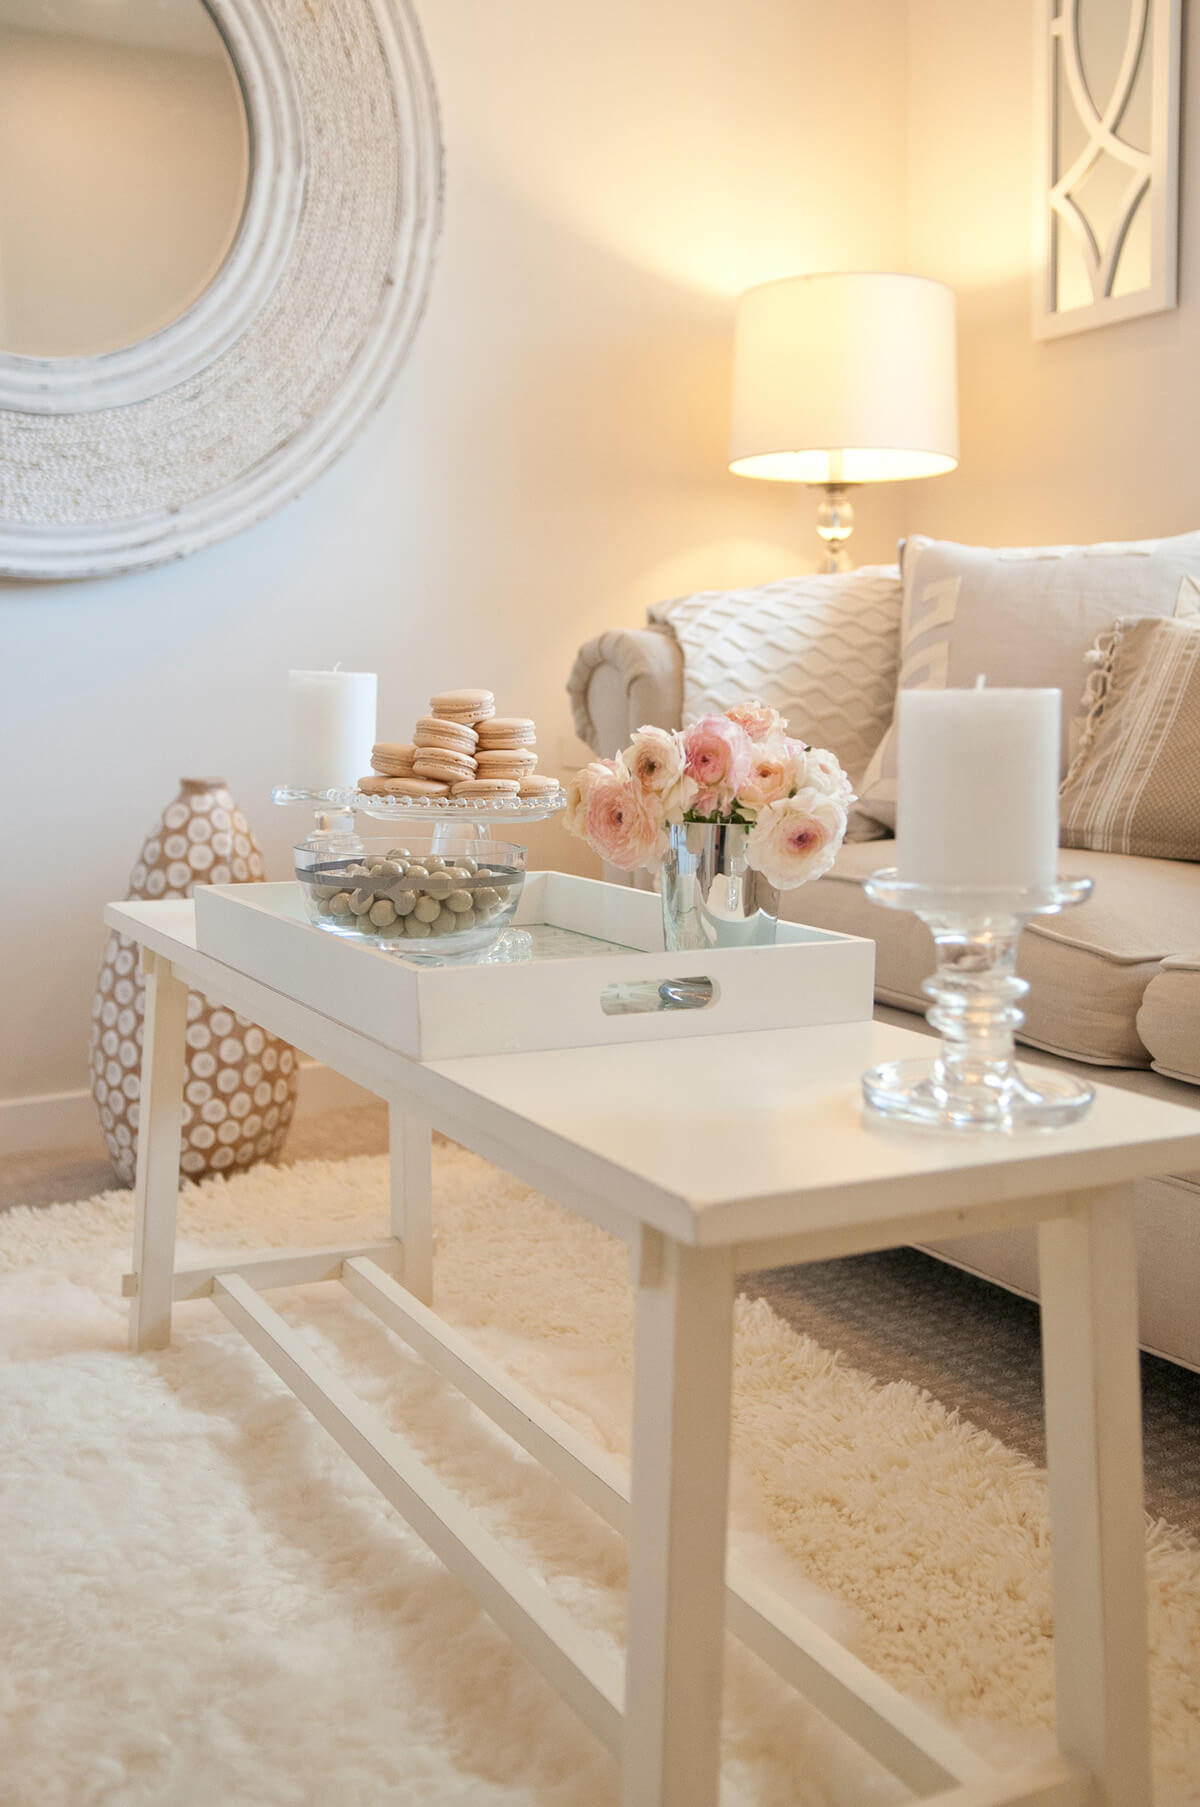 Decorate with Style: 16 Chic Coffee Table Decor Ideas ... on Decor For Room  id=80921